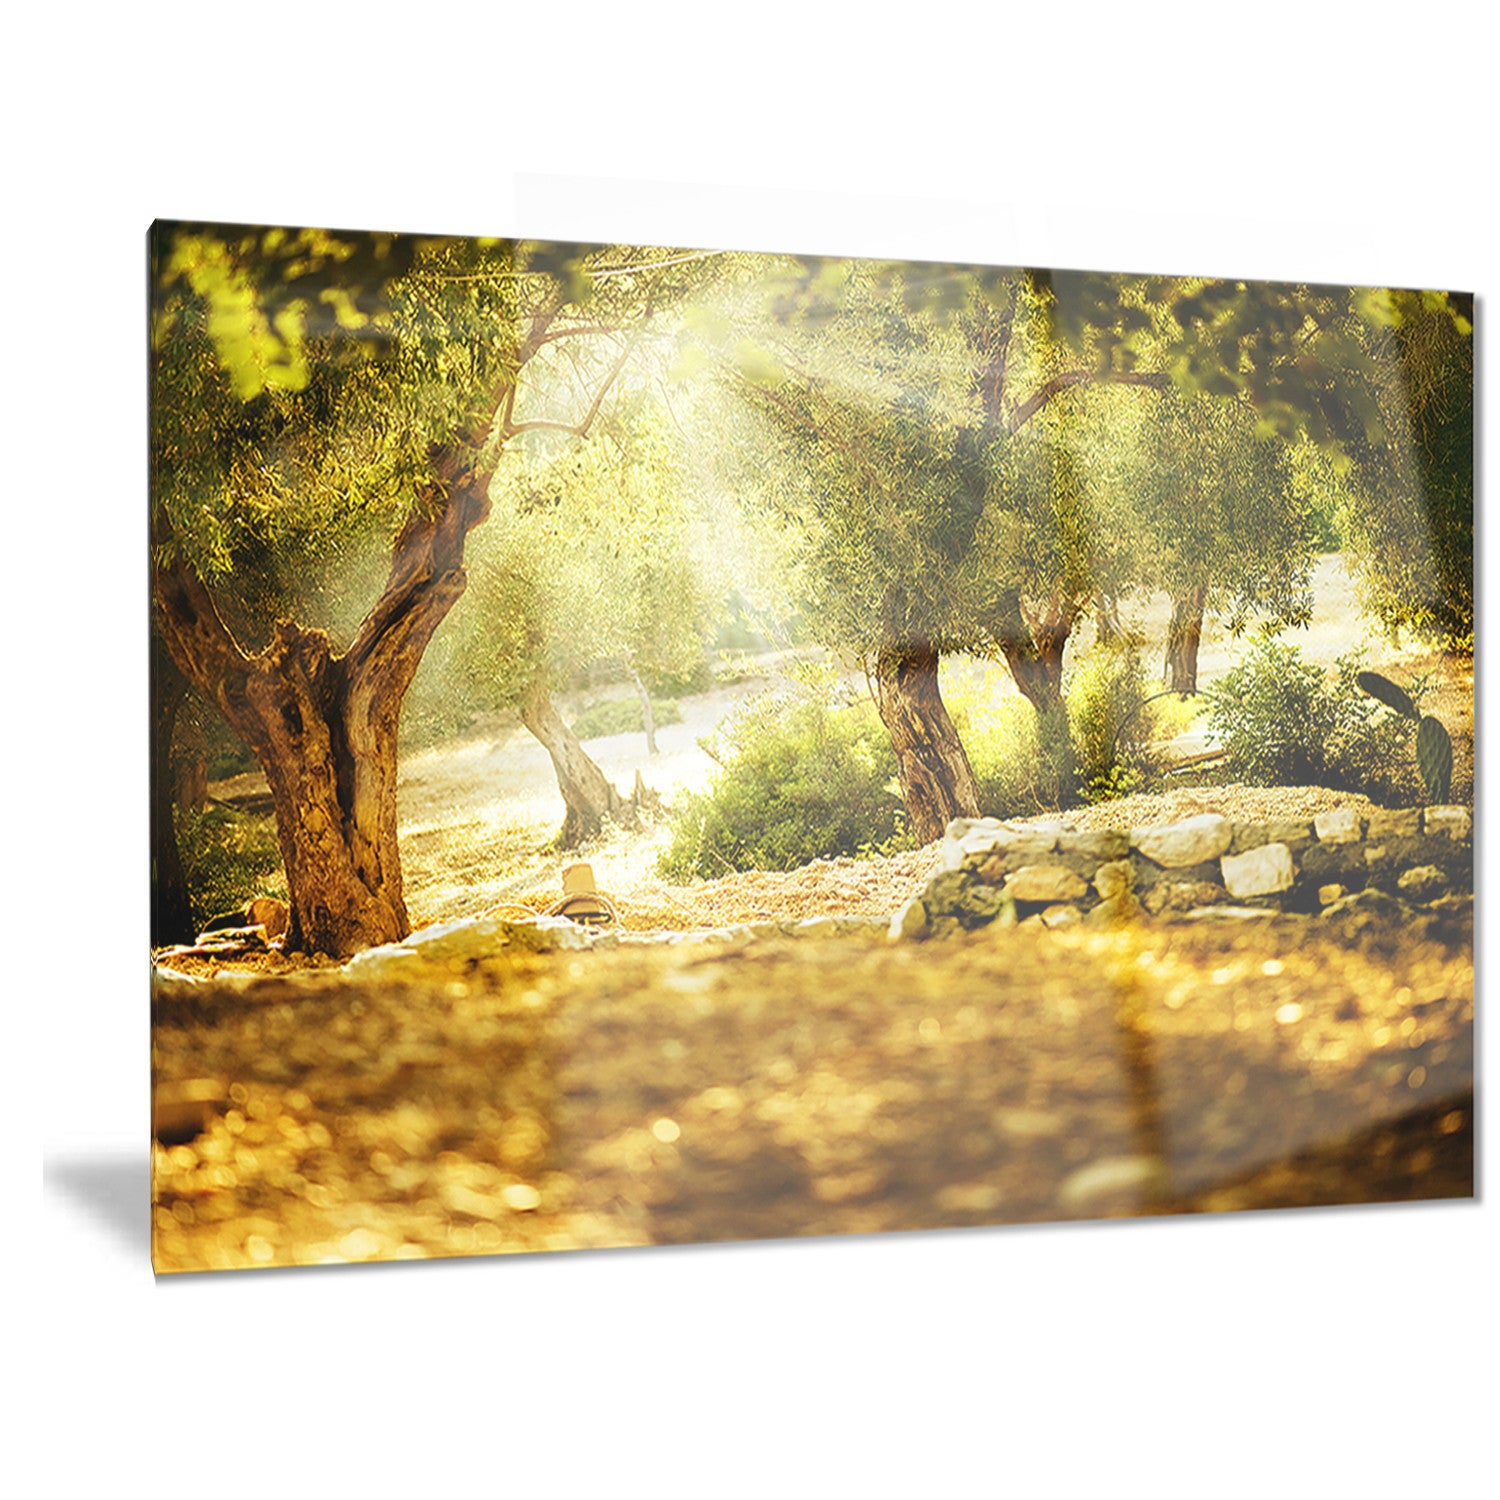 Shop Designart \'Olive Trees\' Photography Metal Wall Art - On Sale ...